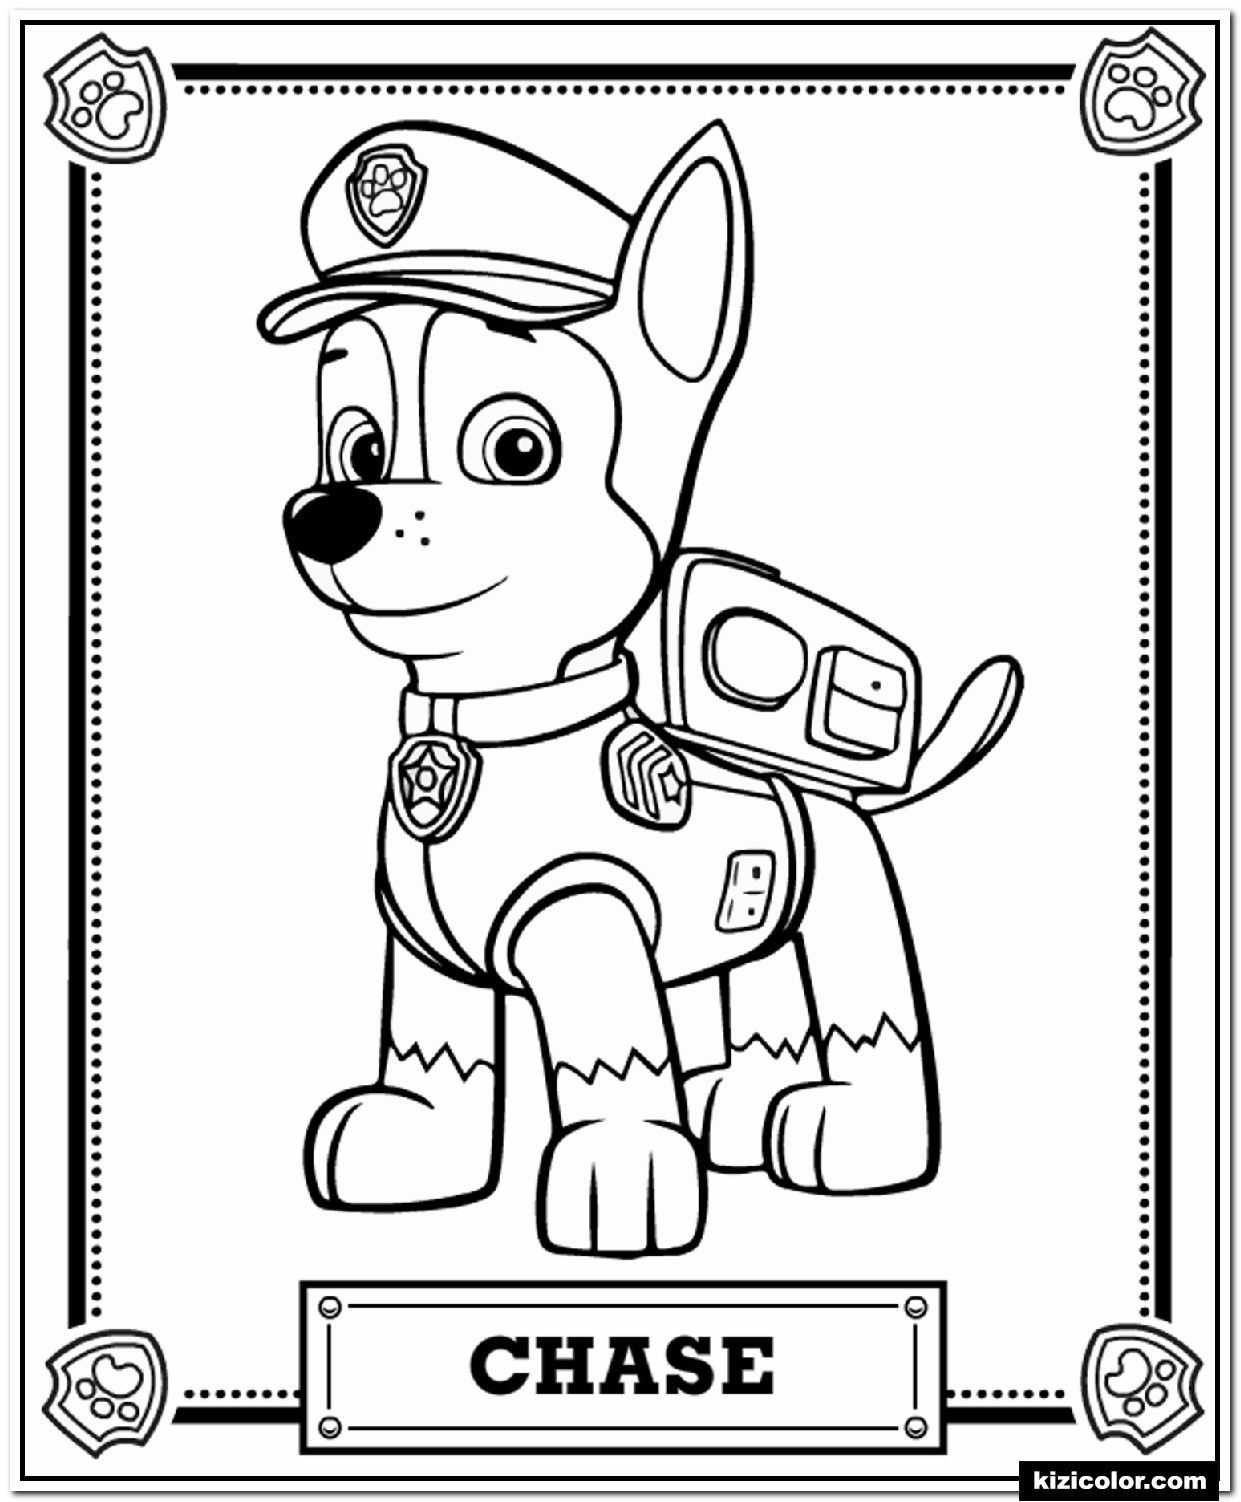 Marshall Paw Patrol Coloring Page Youngandtae Com Paw Patrol Coloring Paw Patrol Coloring Pages Paw Patrol Printables